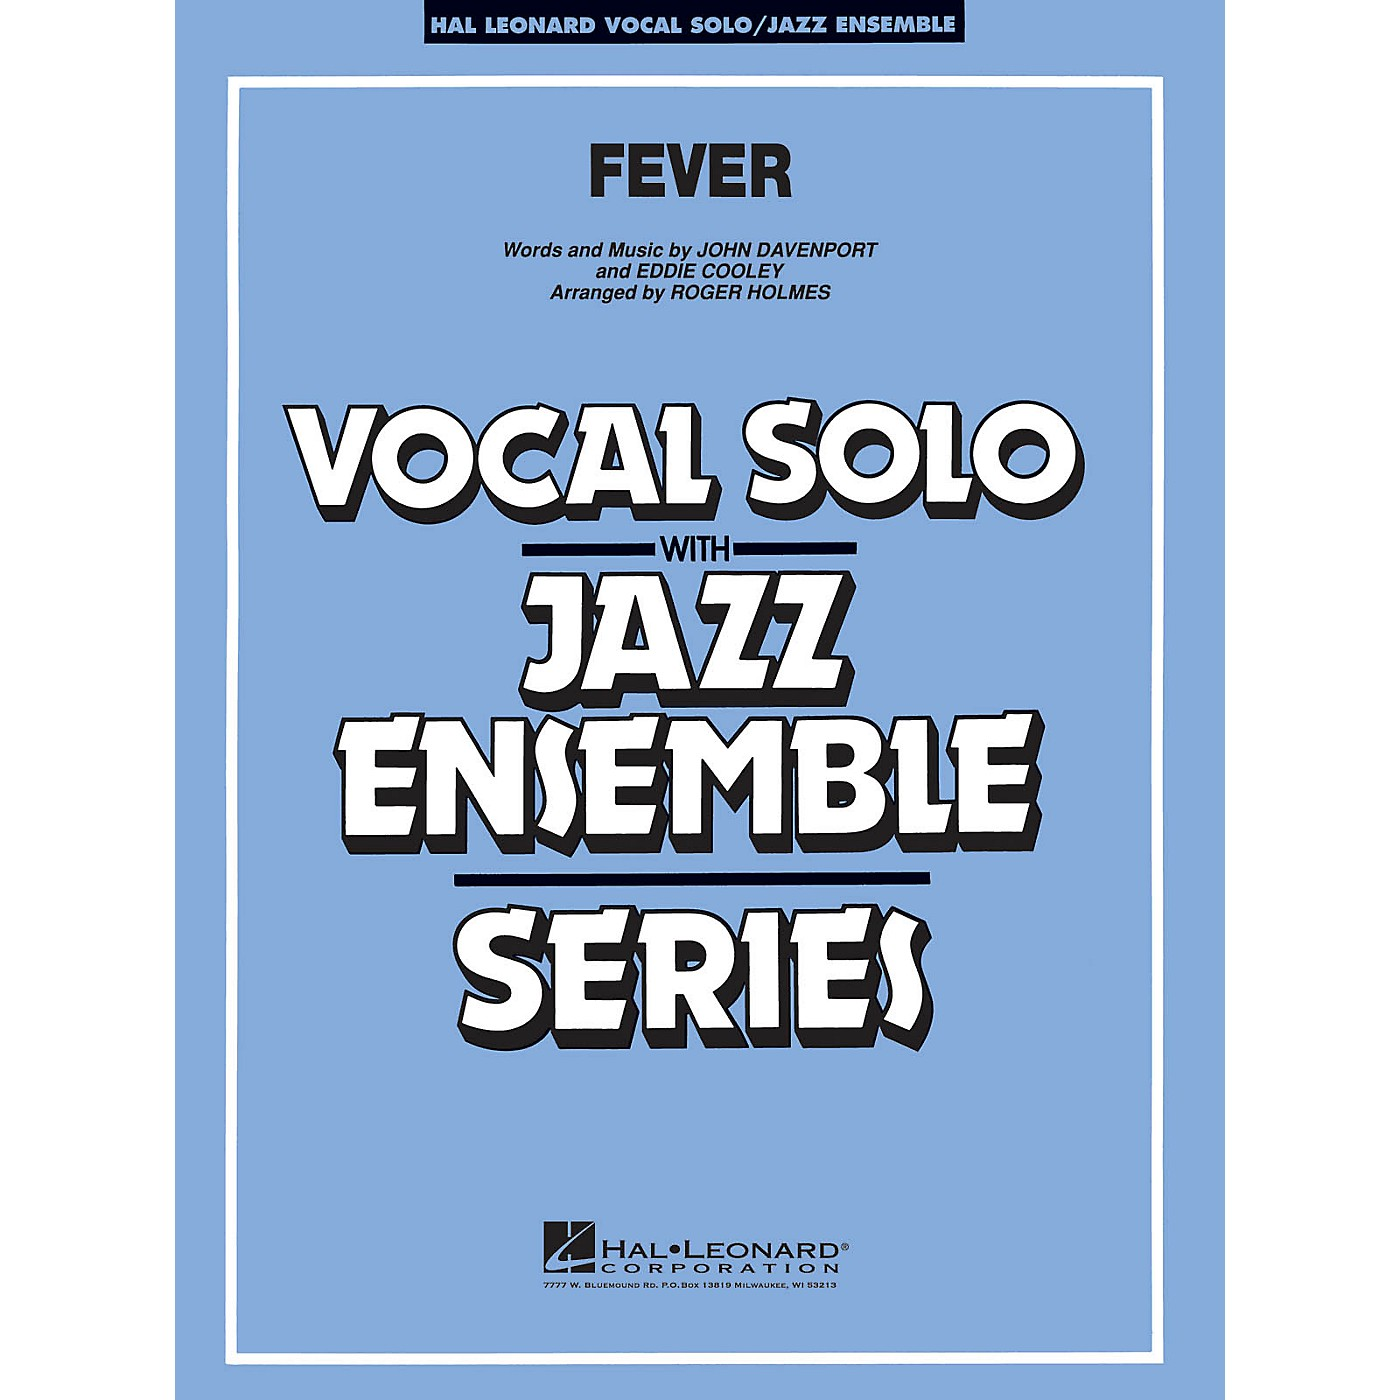 Hal Leonard Fever (Key: Ami-Bbmi) Jazz Band Level 3-4 thumbnail